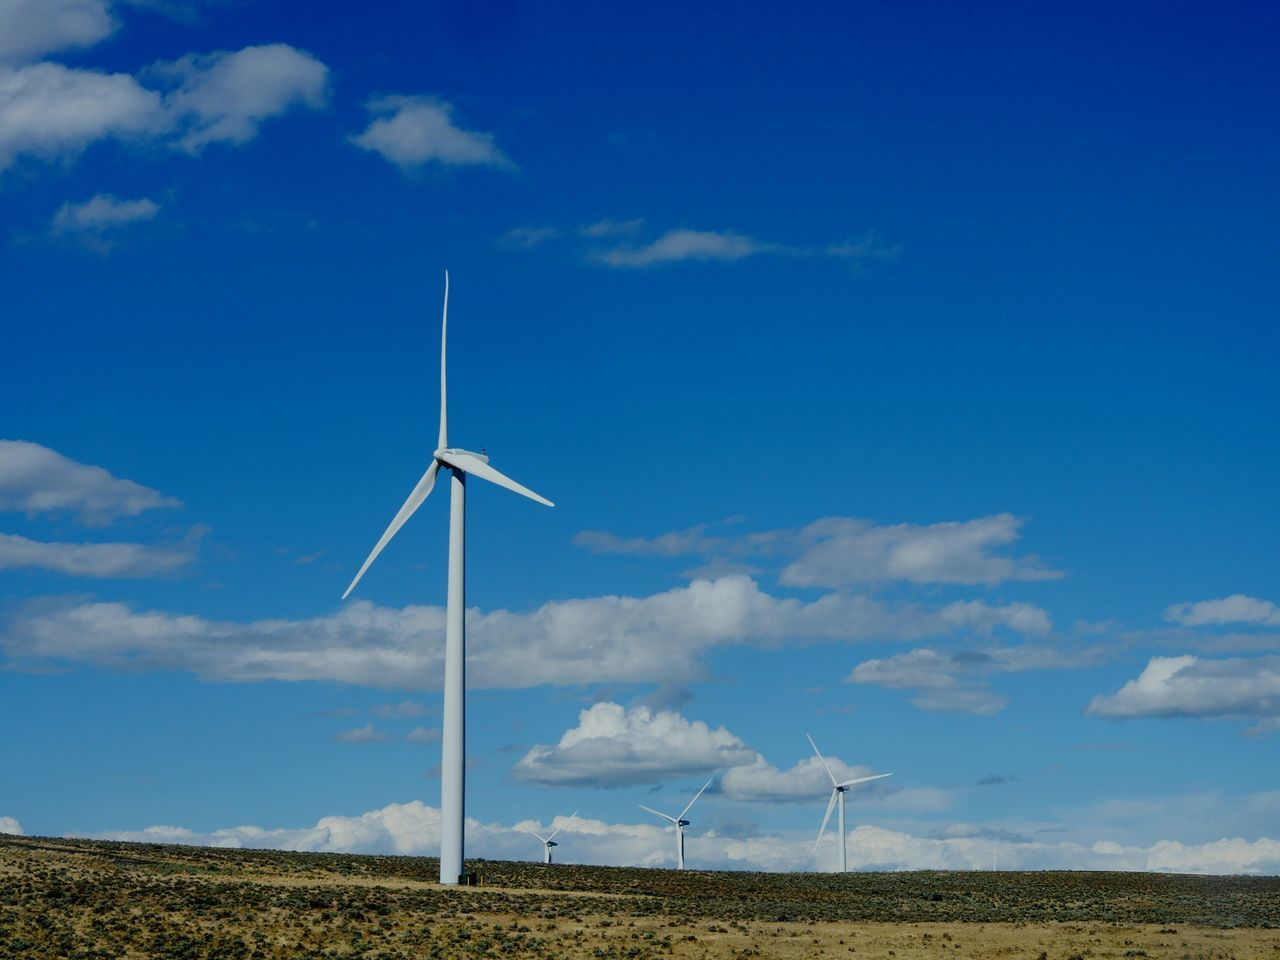 Low Angle View Of Windmills On Field Against Cloudy Blue Sky During Sunny Day